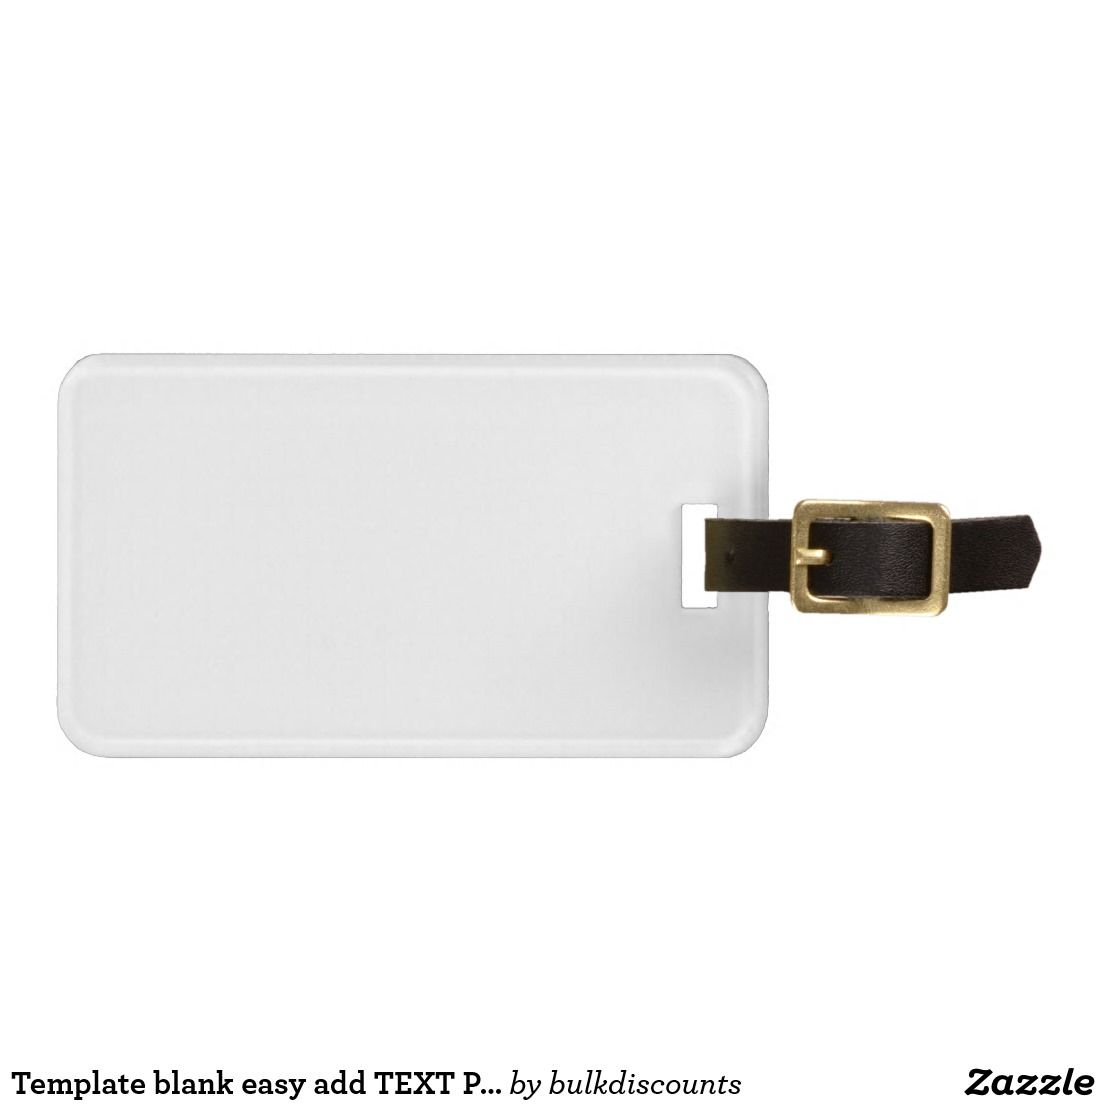 Template blank easy add TEXT PHOTO JPG IMAGE FUN Luggage Tag | 1 ...